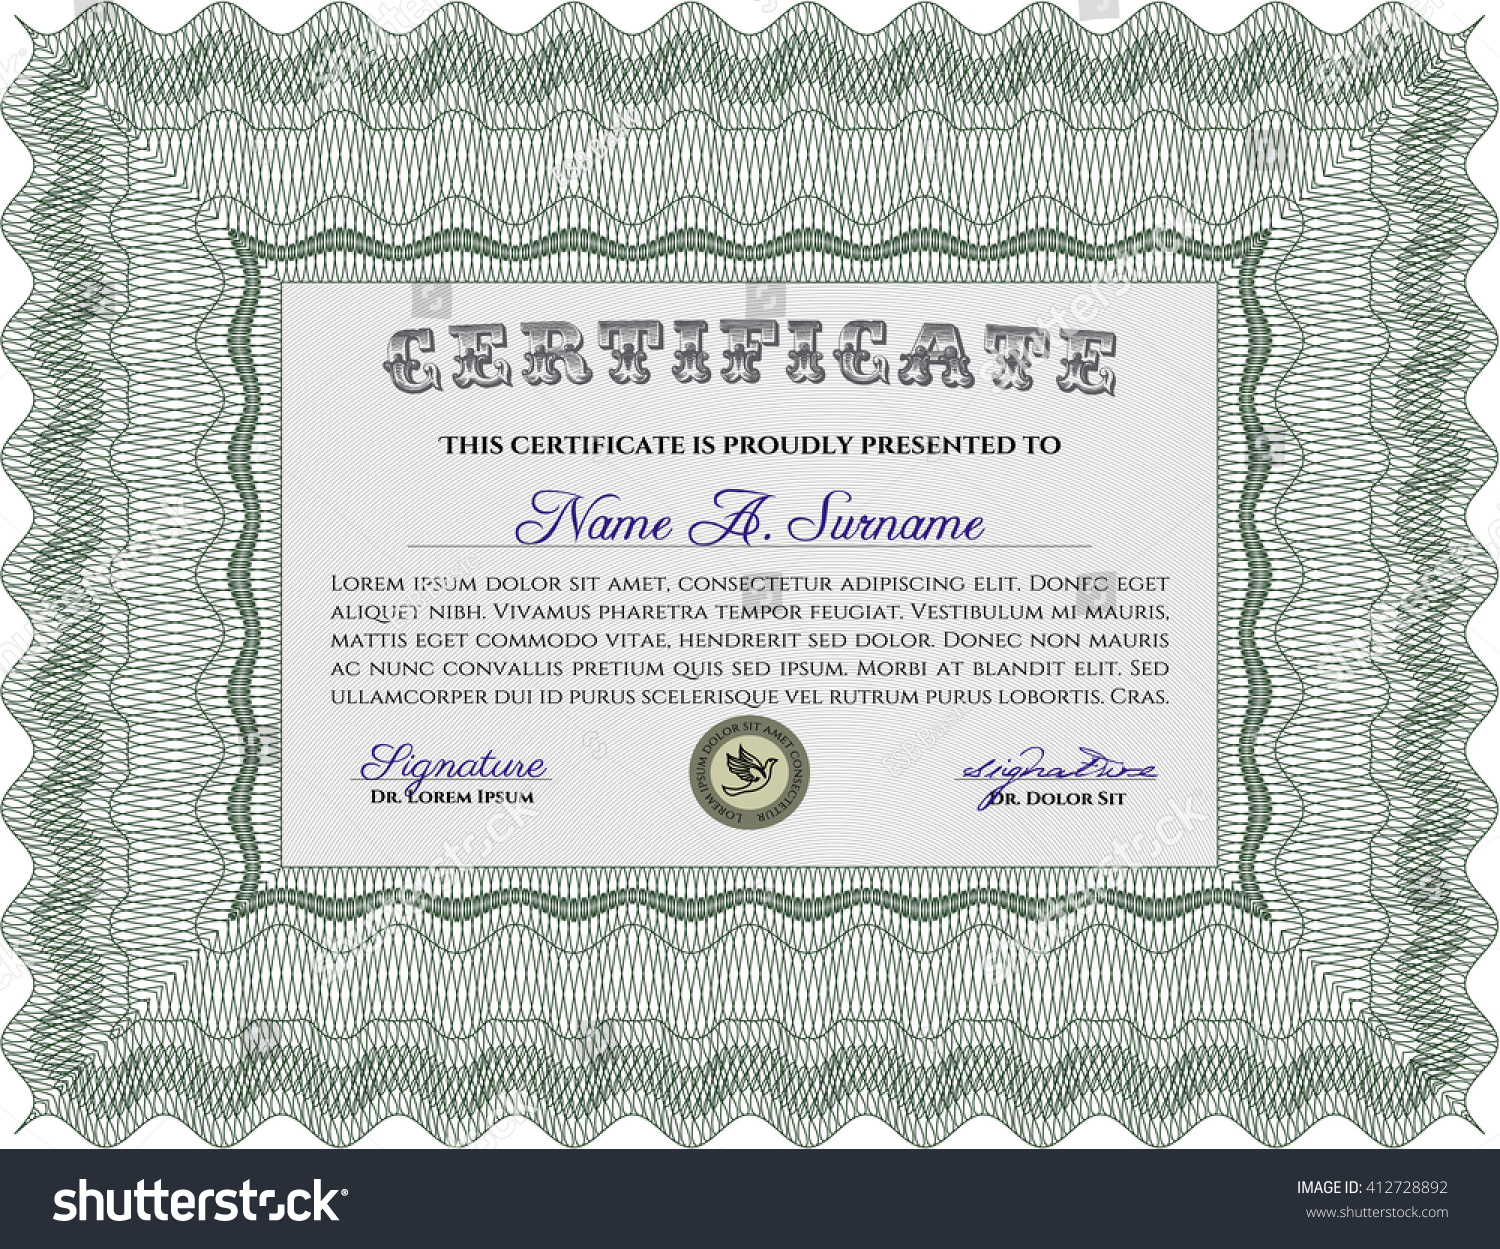 Certificate template customizable easy edit change stock vector certificate template customizable easy edit change stock vector 412728892 shutterstock yelopaper Images